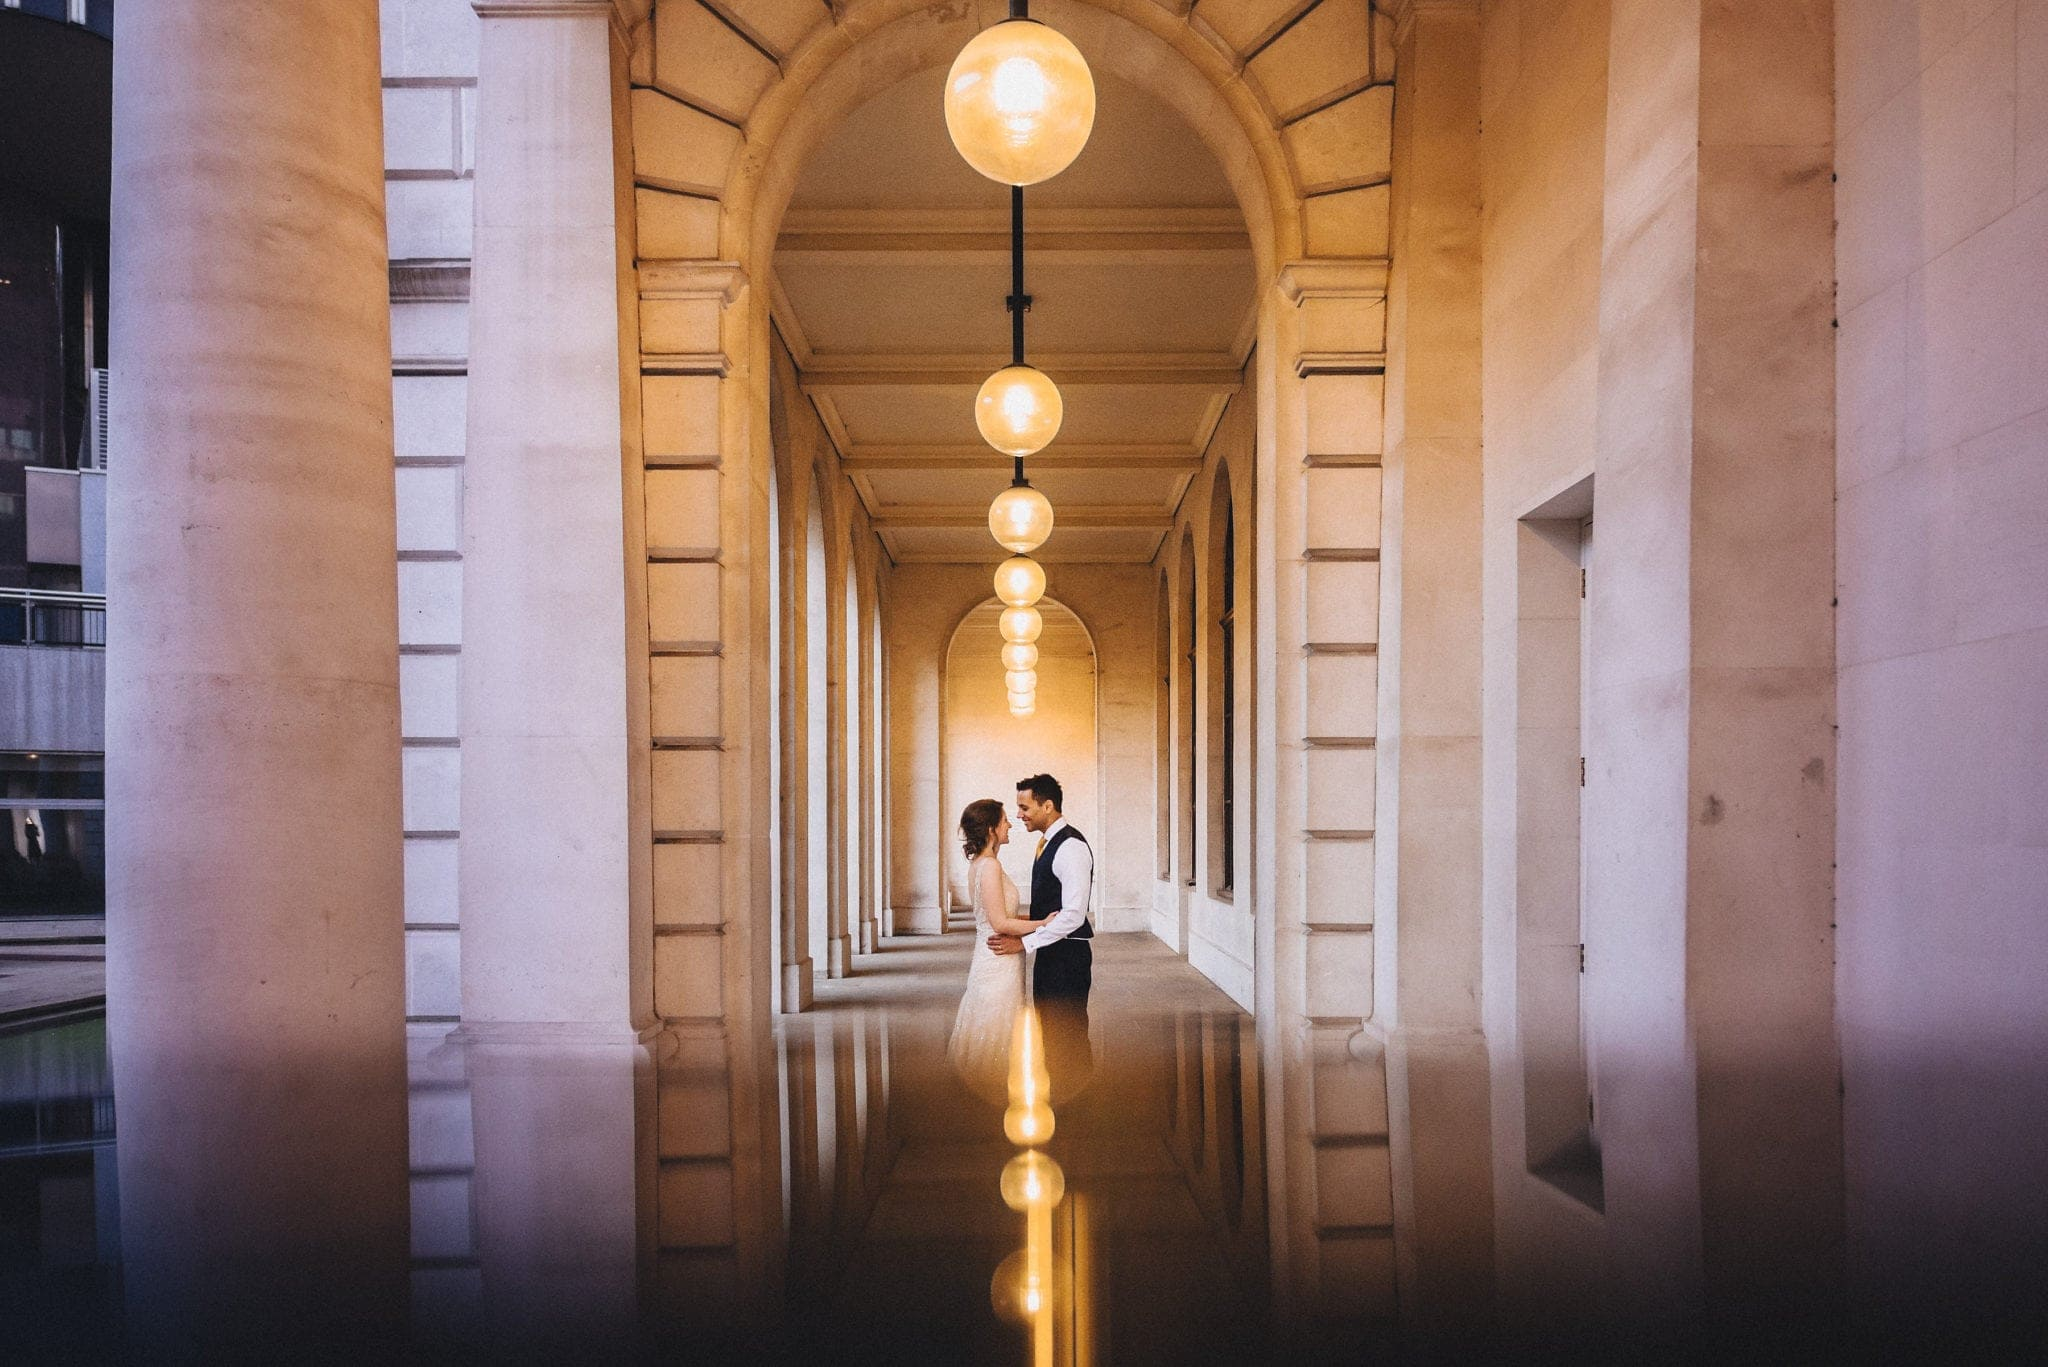 Bride and groom embrace in Merchant Taylor's Hall courtyard under the arches